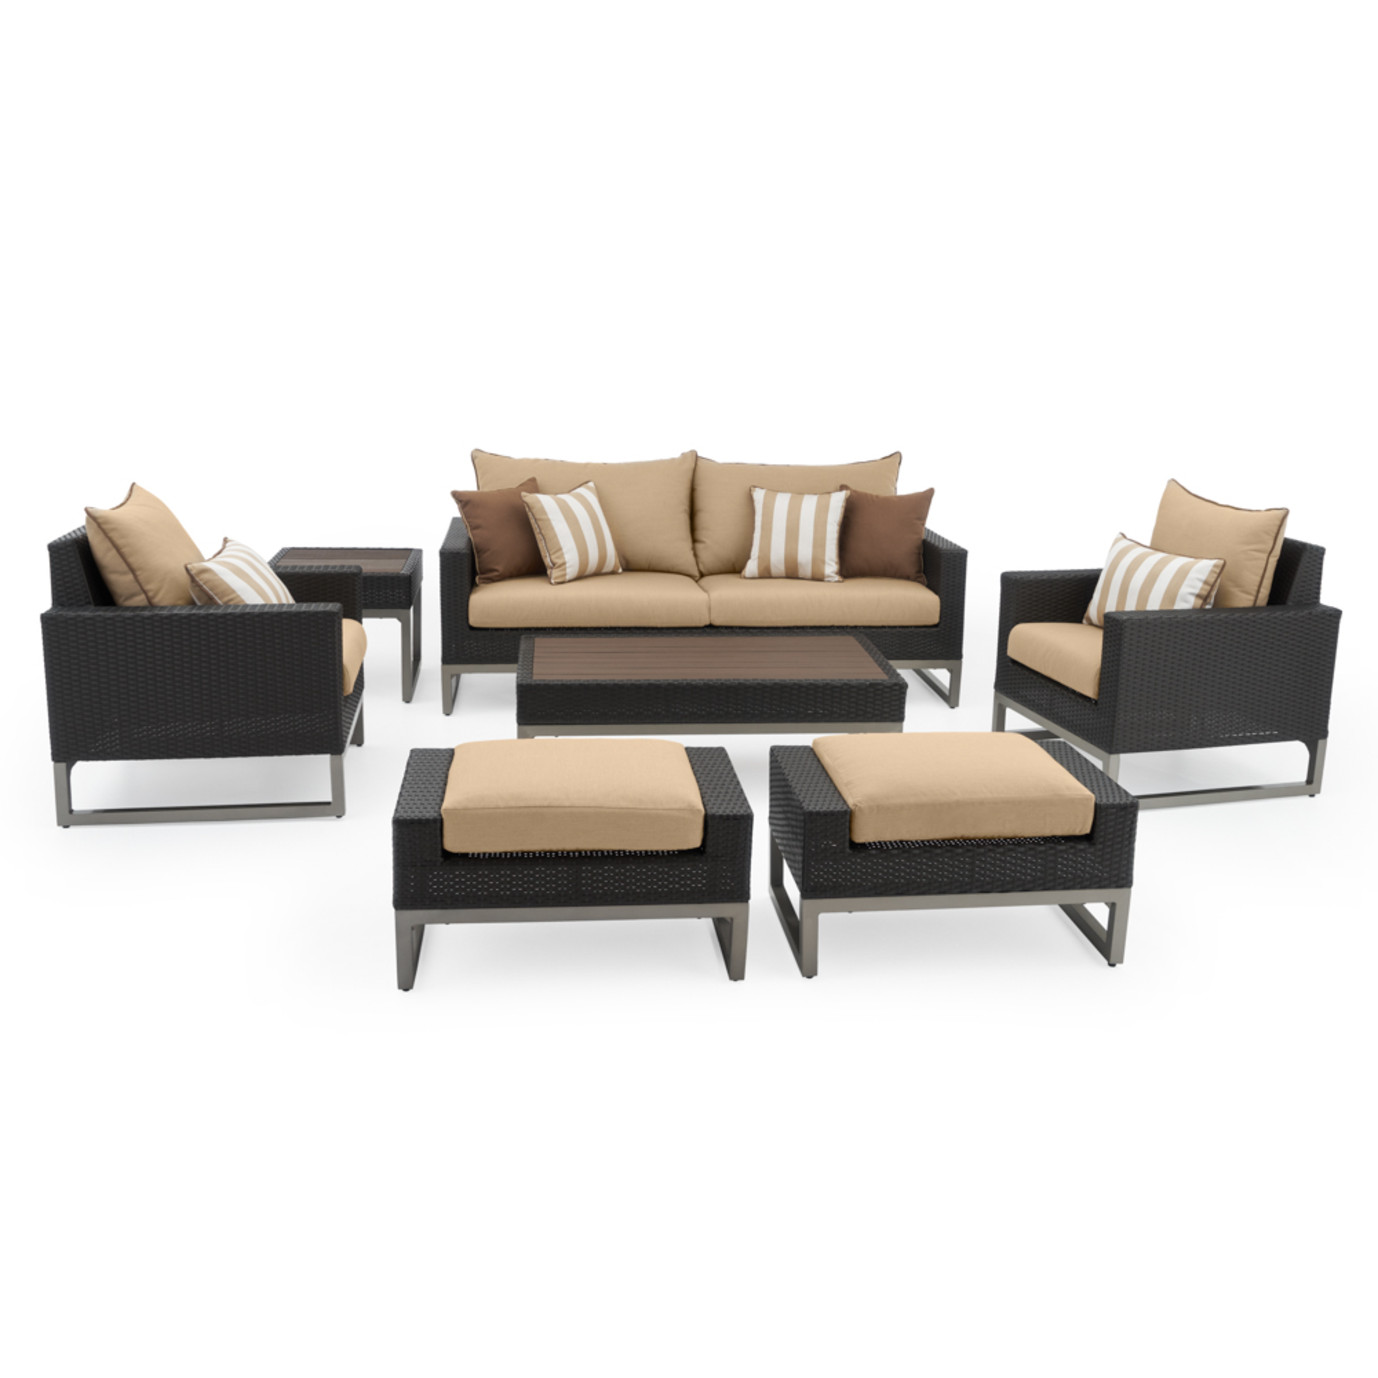 Milo™ Espresso 7pc Deep Seating Set -Maxim Beige